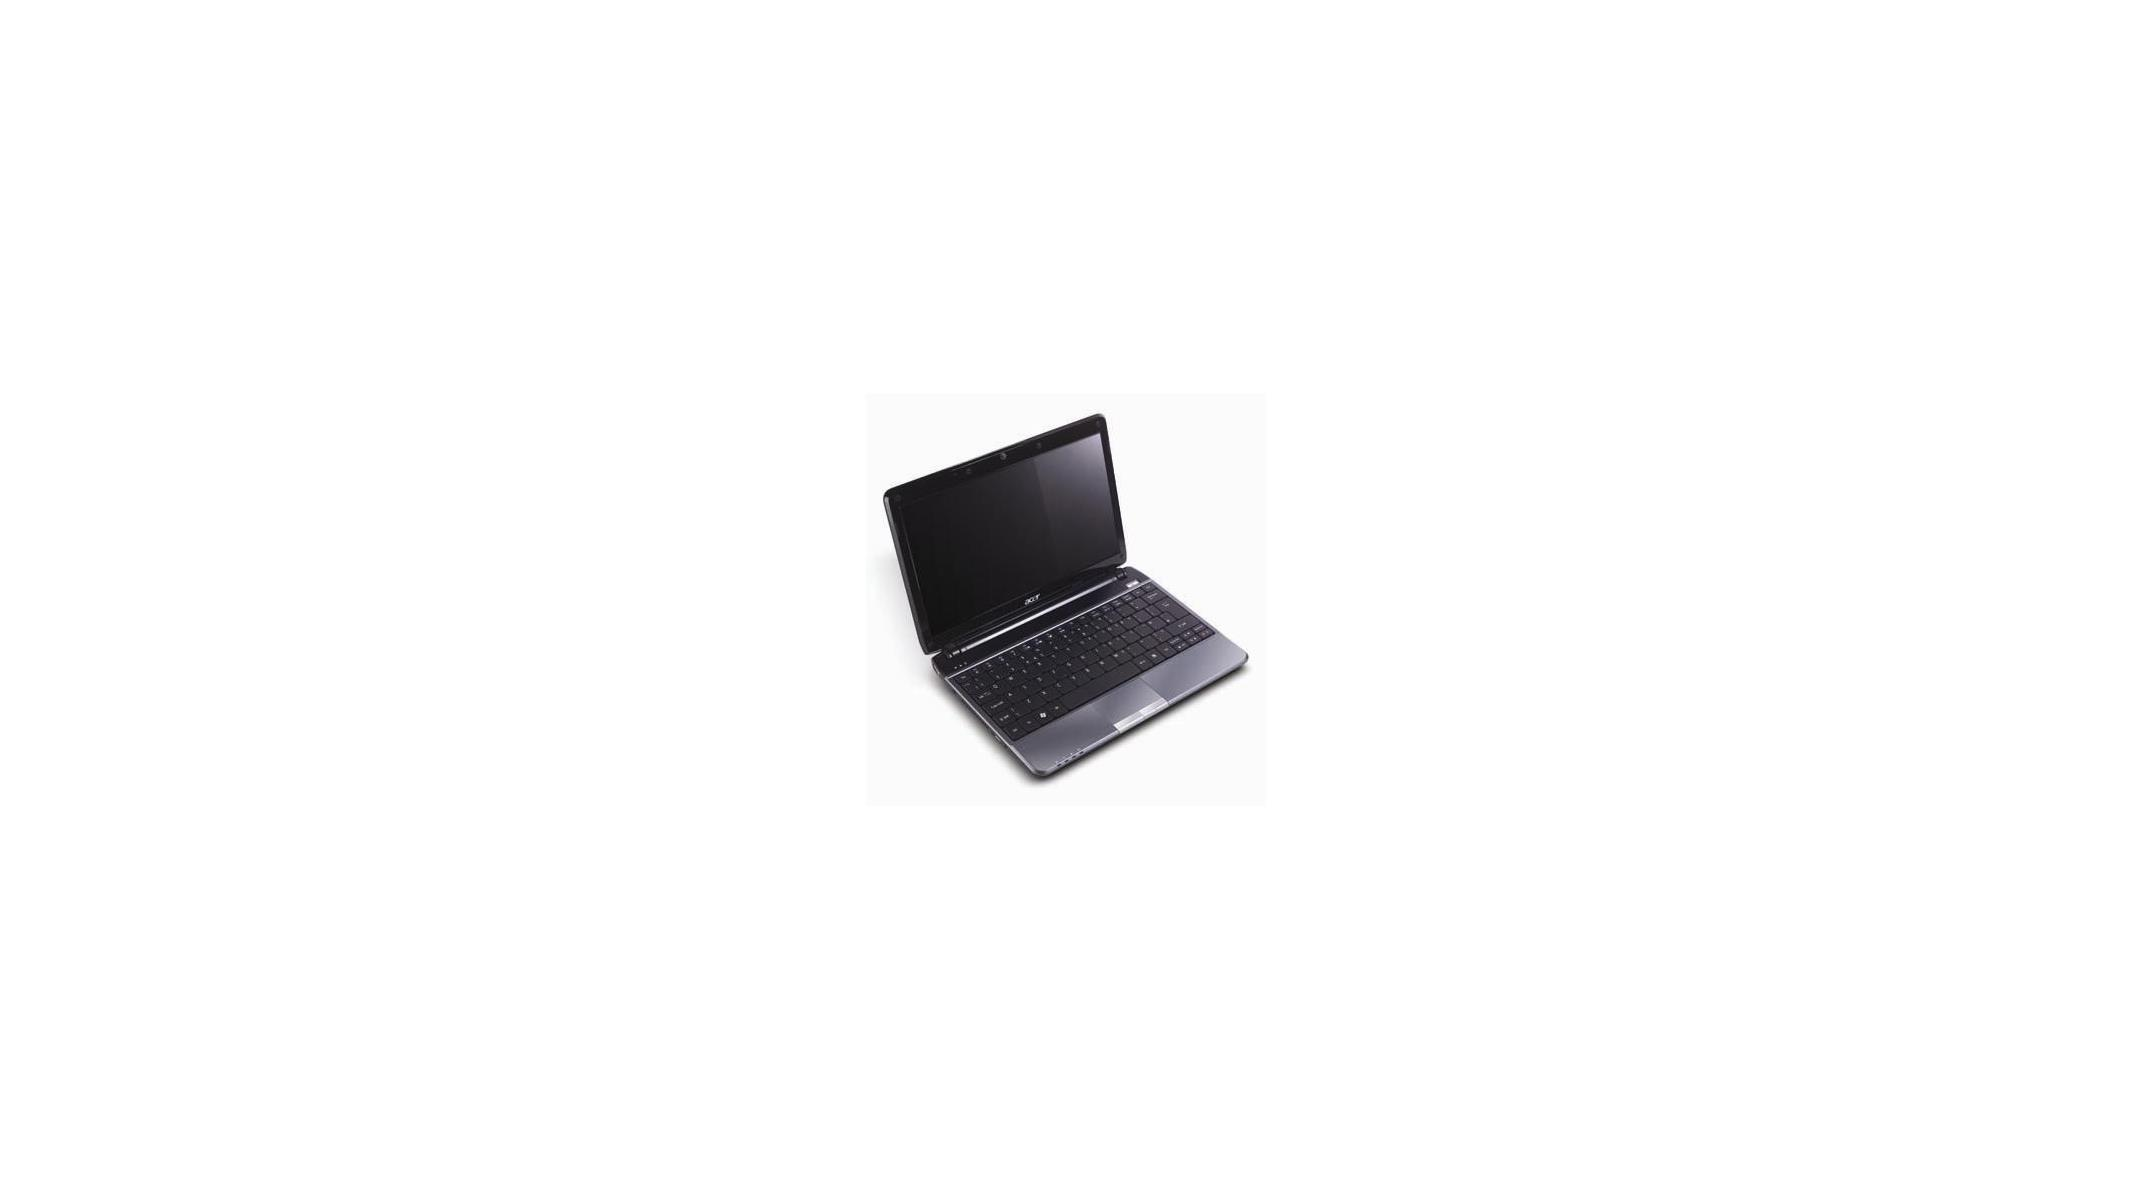 ACER ASPIRE AS1410 DRIVERS FOR WINDOWS